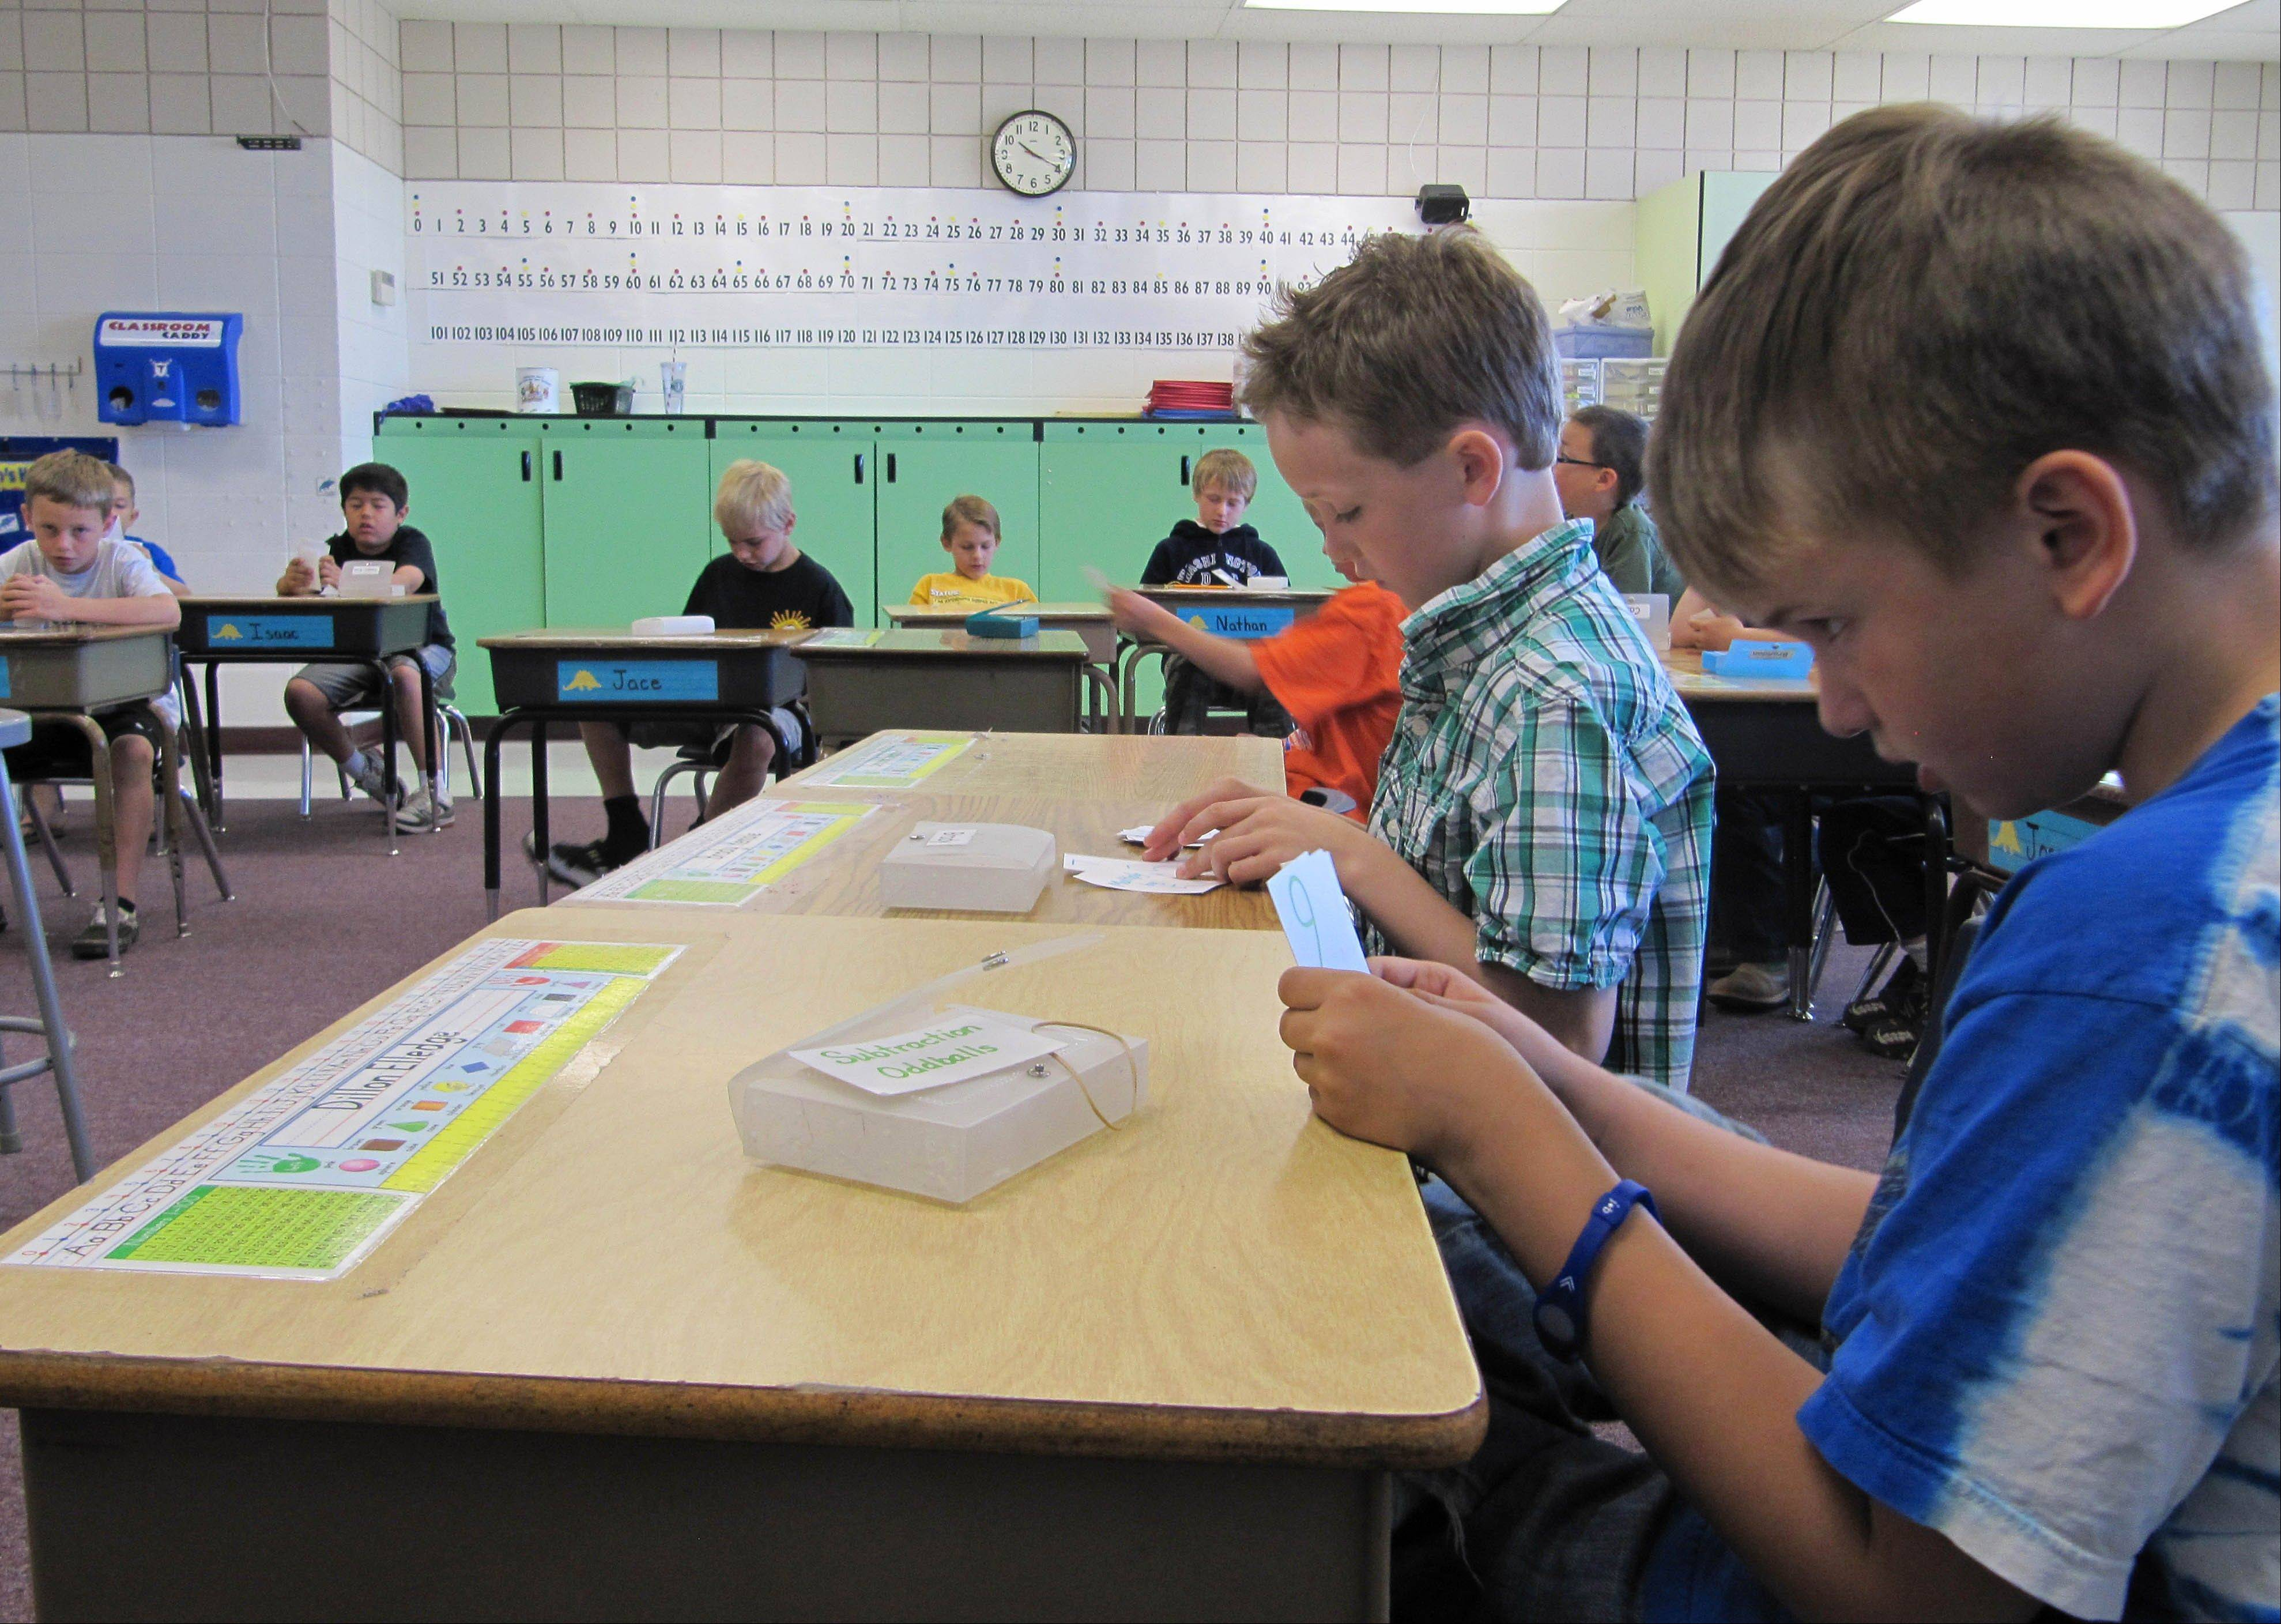 Dillon Elledge, 8, right, and Brody Kemble, 7, work with flash cards in May in their all-boys classroom at Middleton Heights Elementary in Middleton, Idaho. Middleton is believed to be the only public school in Idaho offering all-boy and all-girl classrooms.